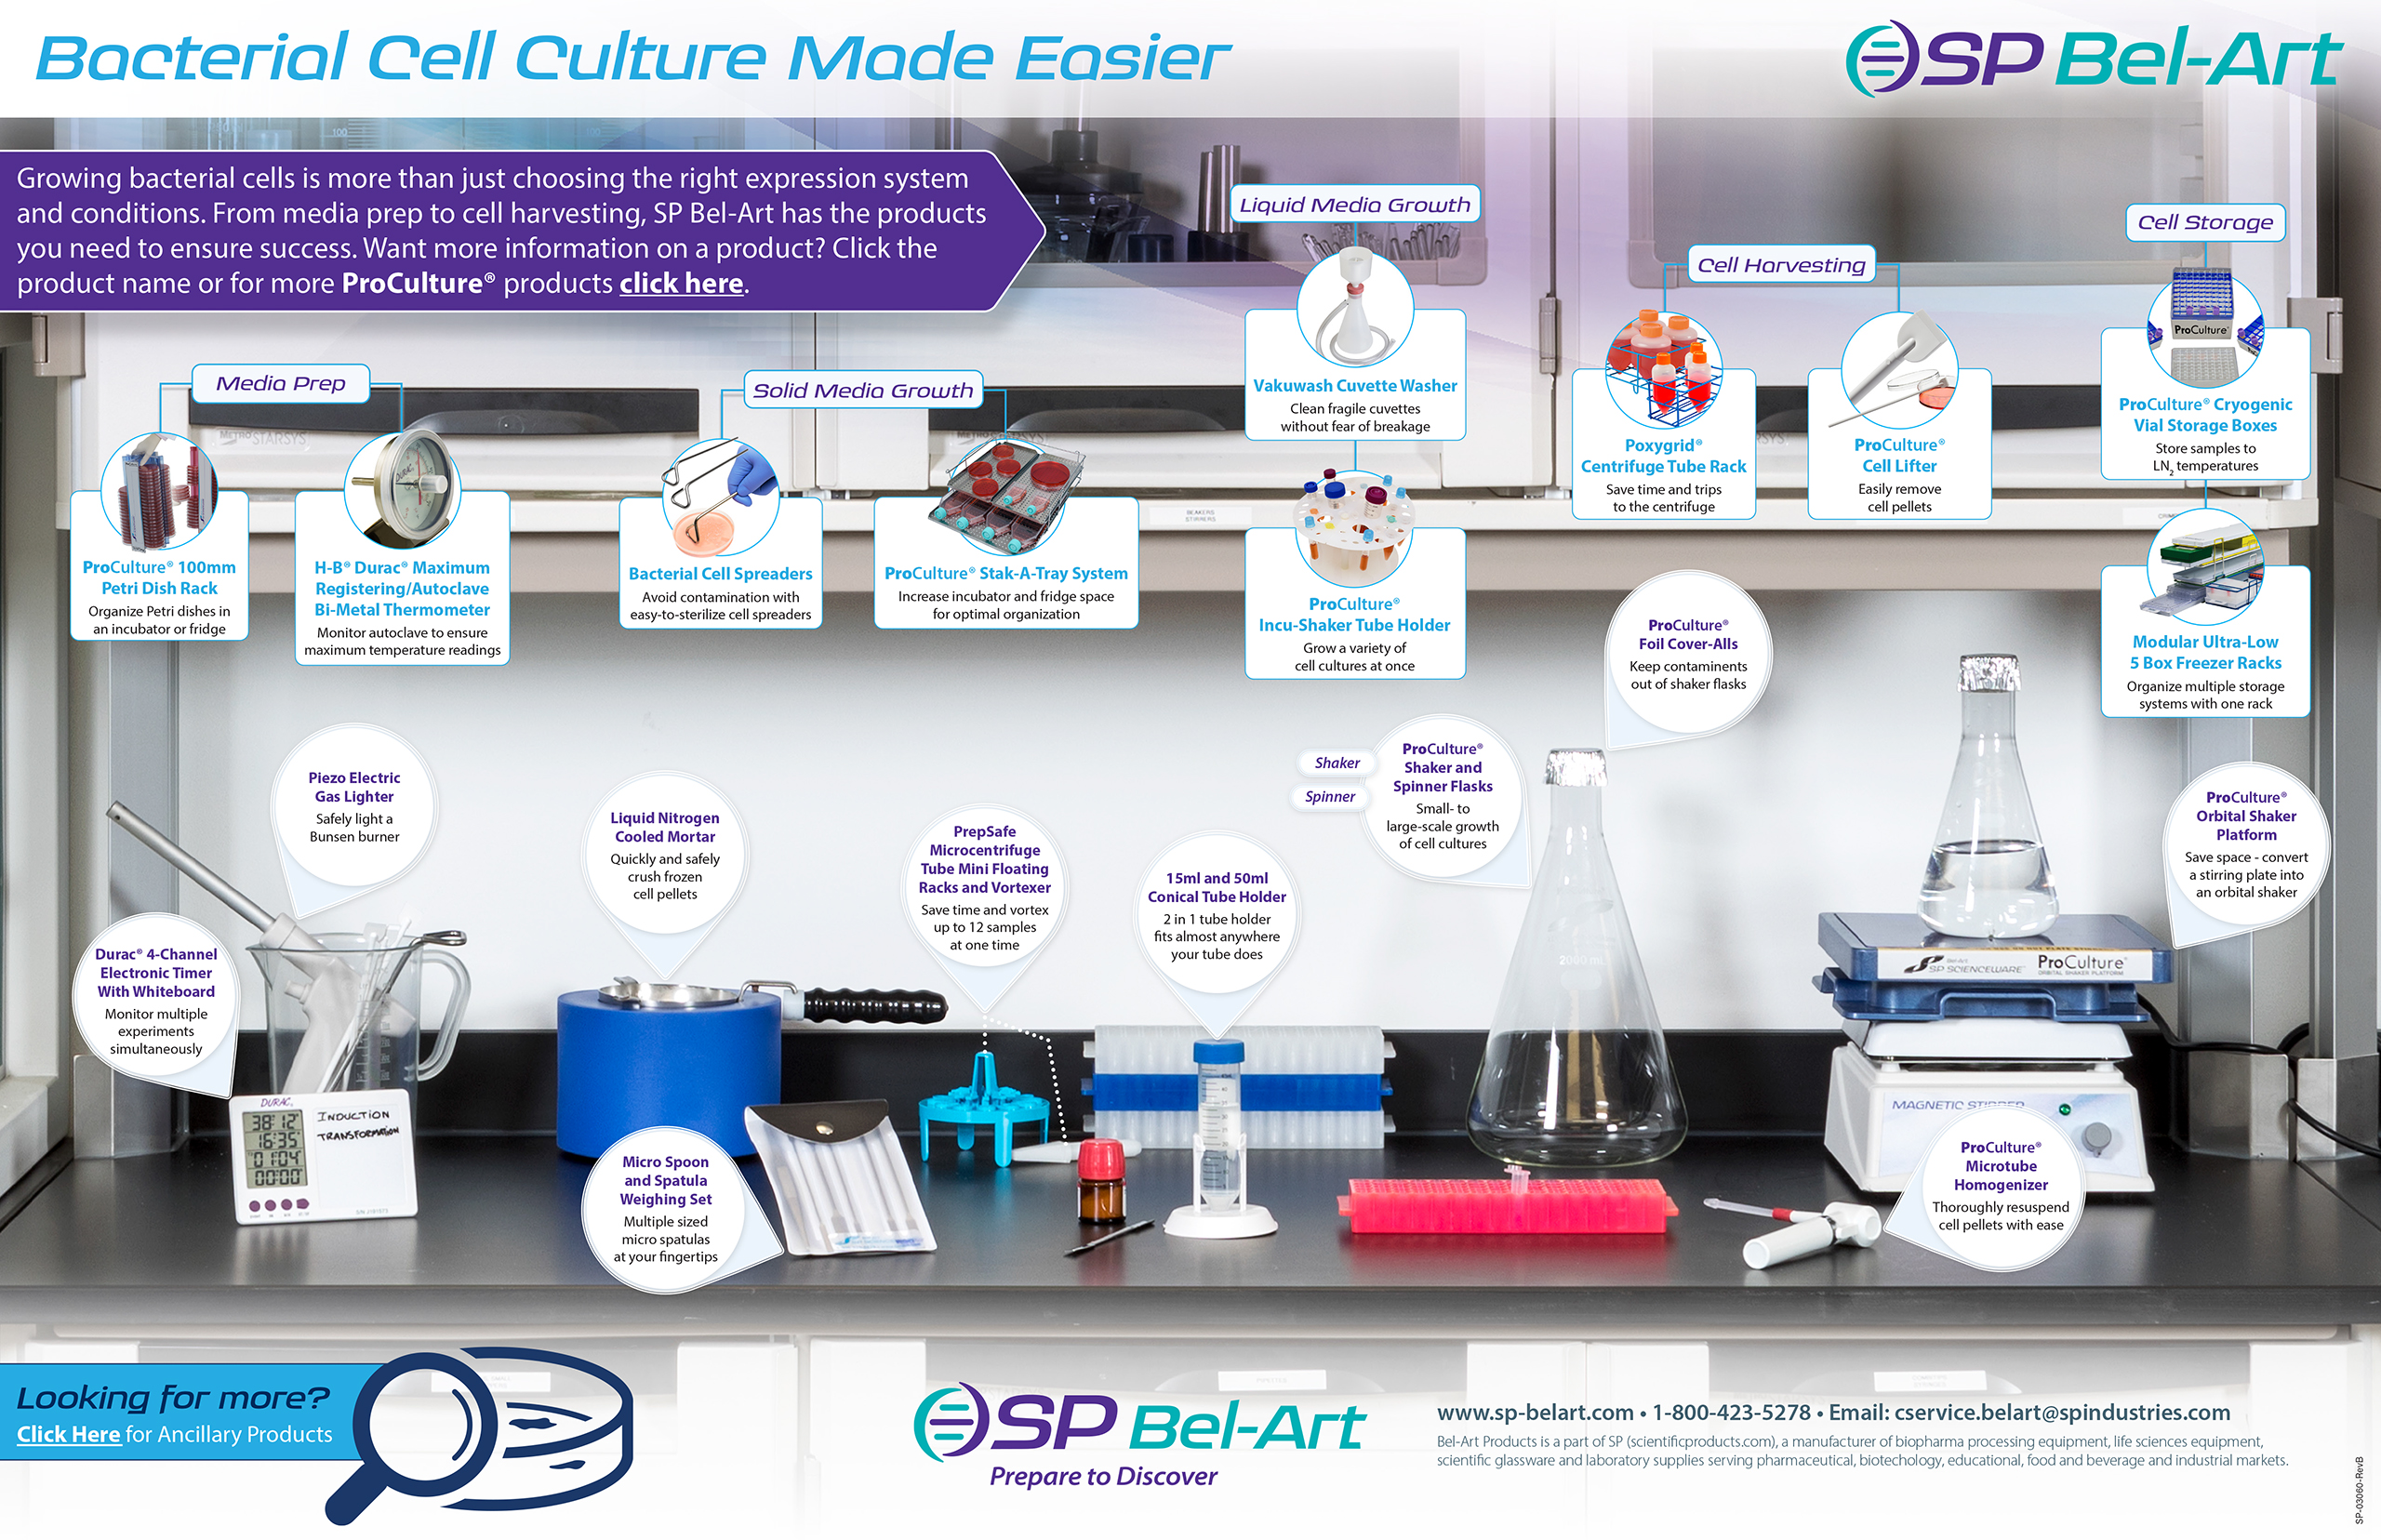 Image: Bacterial-Cell Culture Made Easier